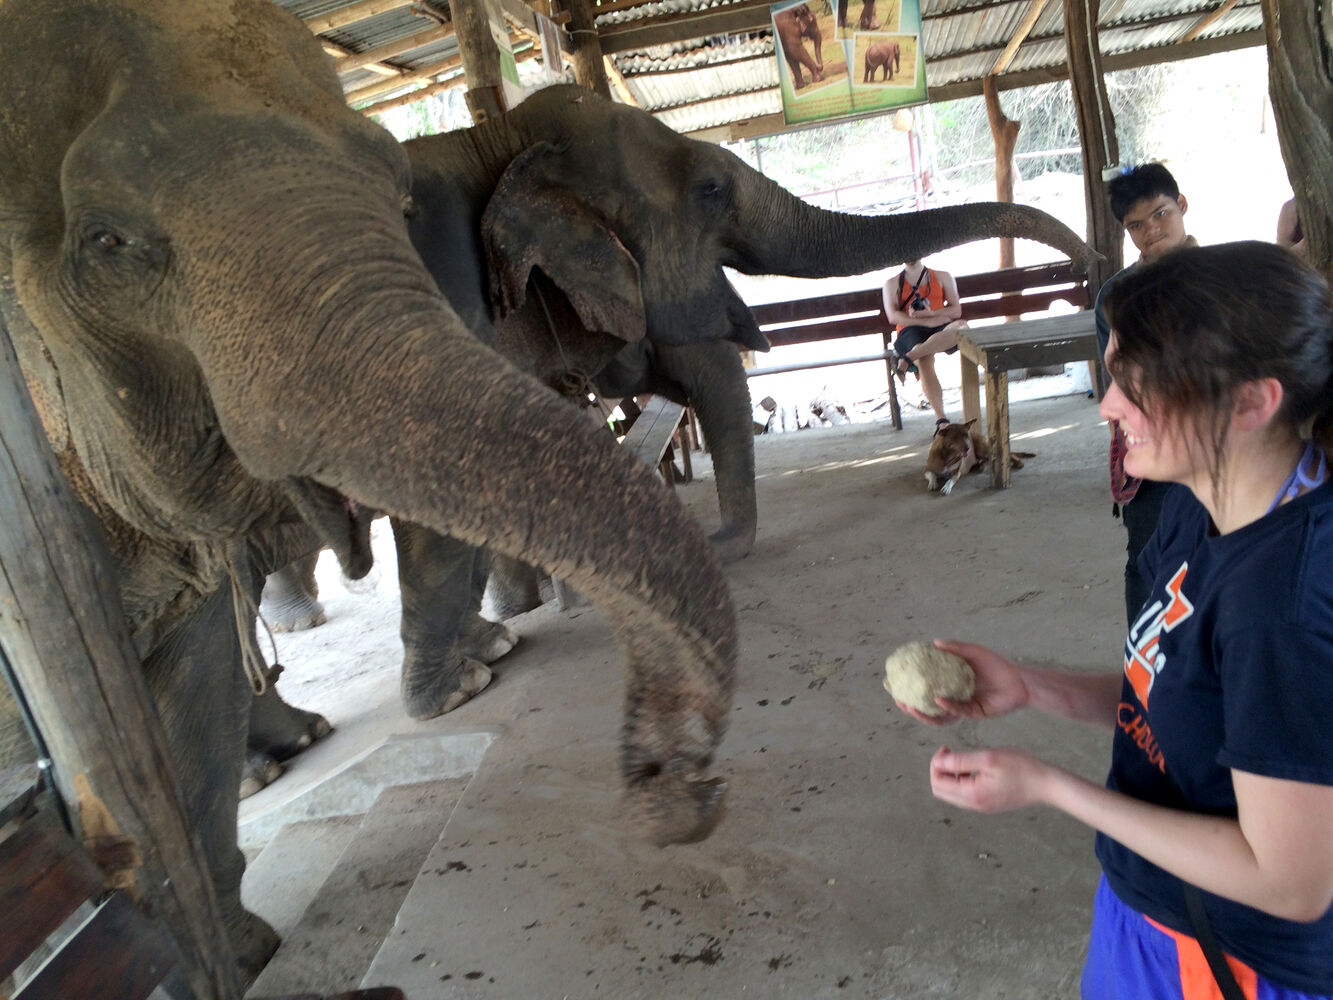 Visitors to the Elephants World sanctuary help feed the facility's older elephants, who have lost most of their teeth and can't eat their regular diet. Patrons of the rescue facility learn about interacting ethically as a tourist with Thailand's national animal, as well as putting in a little labour to help care for the gentle giants. (Colin Corneau/Brandon Sun)